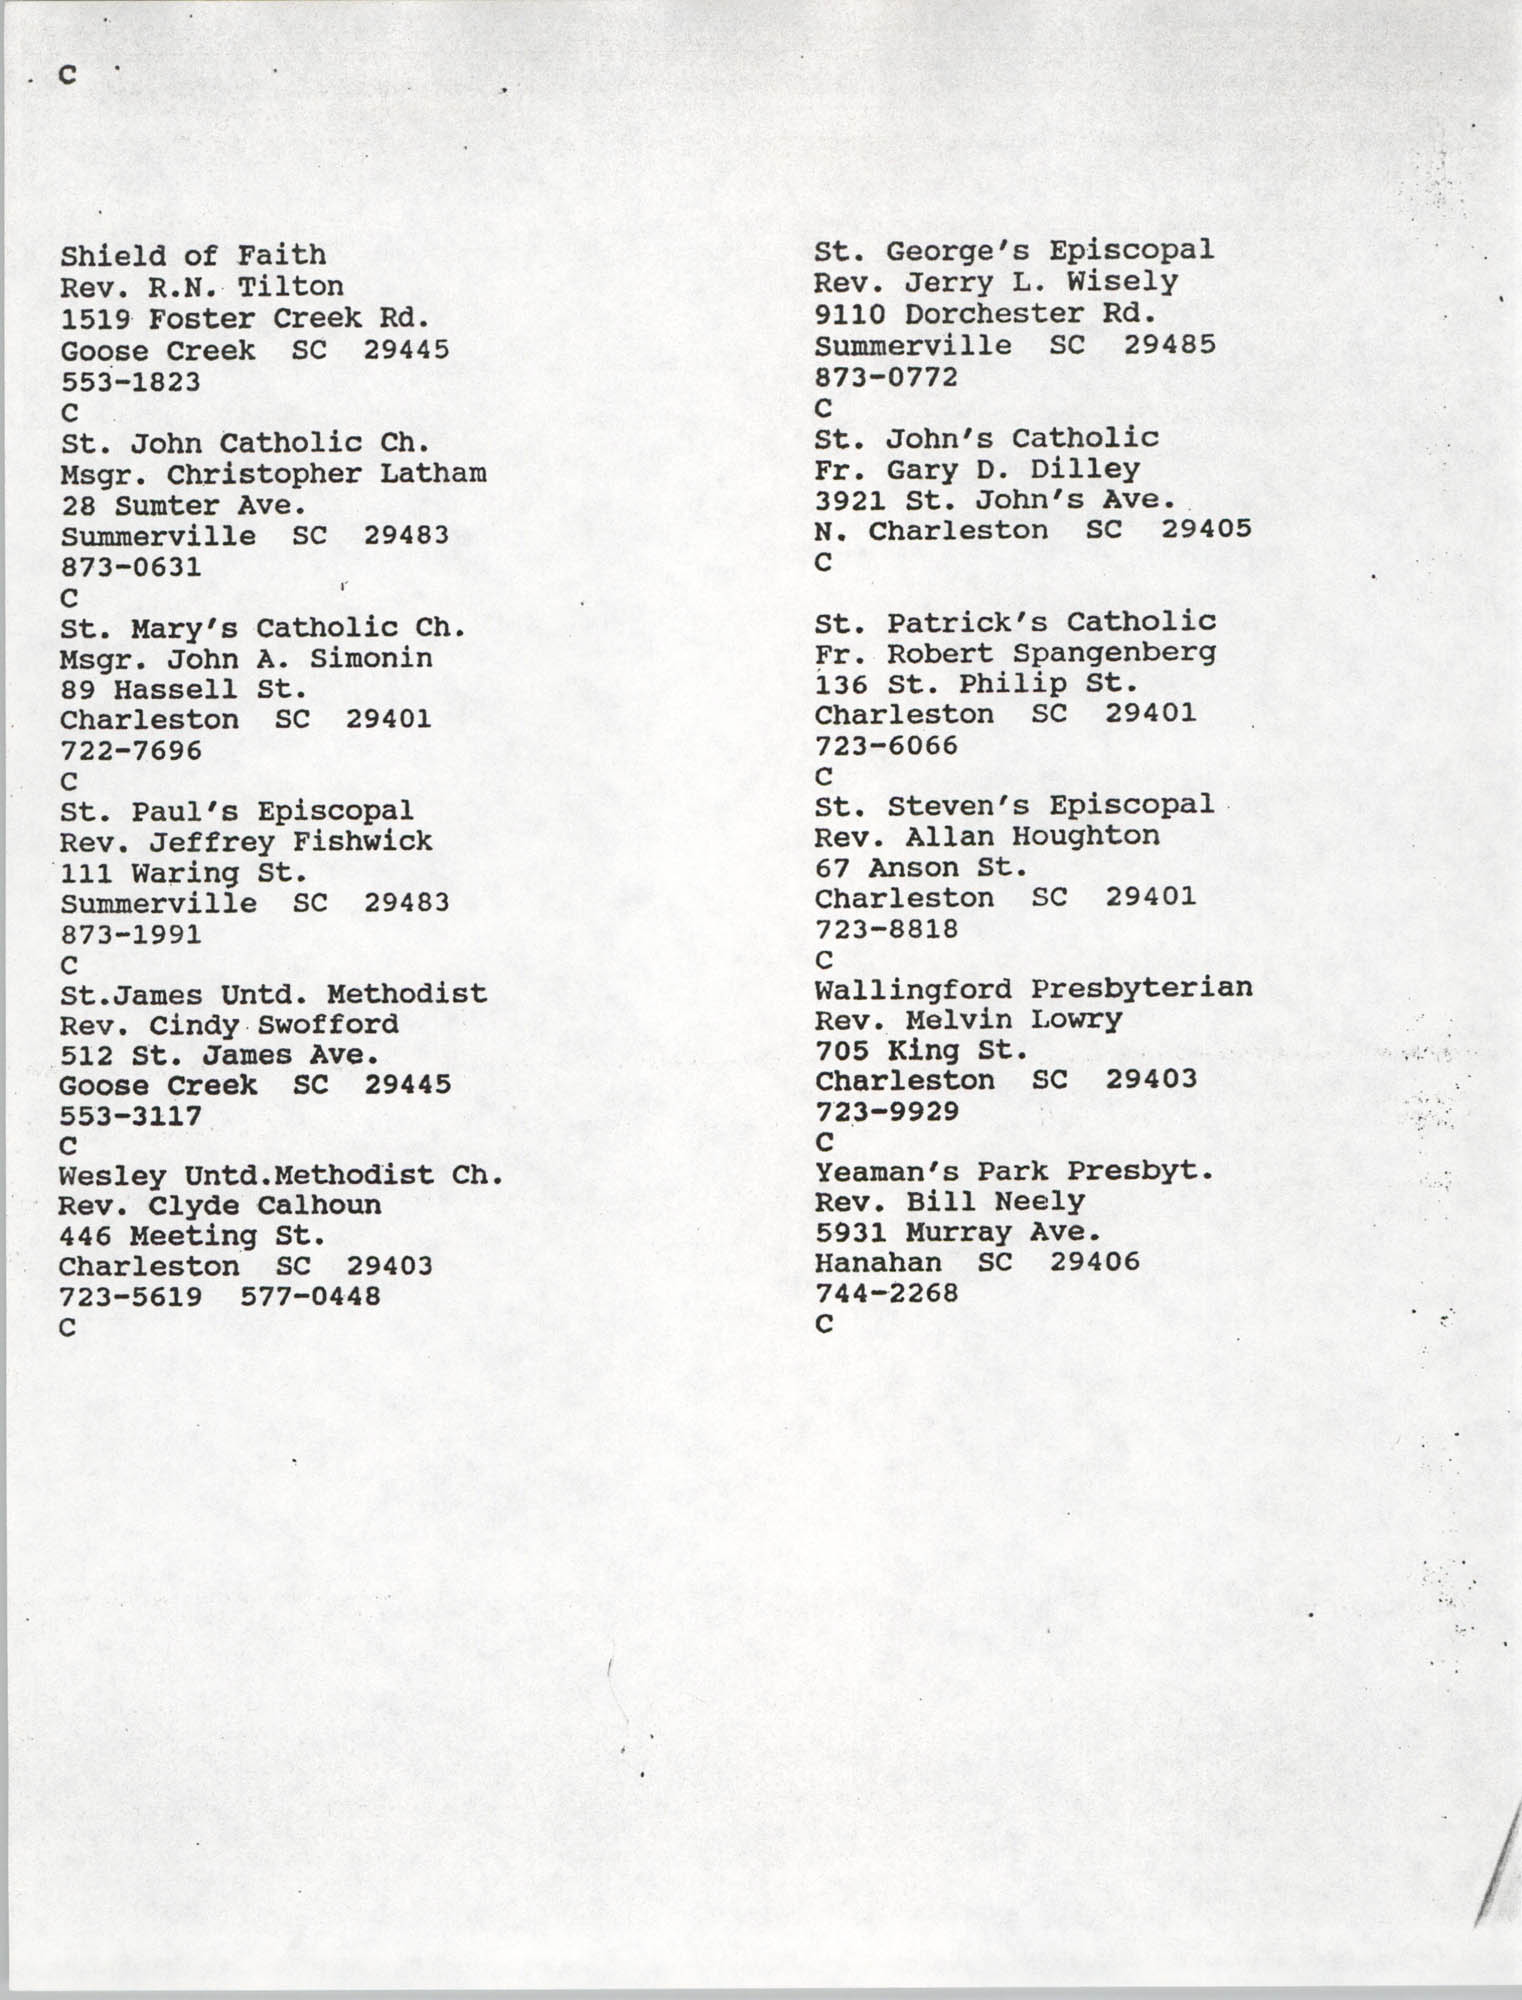 Church Contact List, Charleston Chapter of the NAACP, Page 17